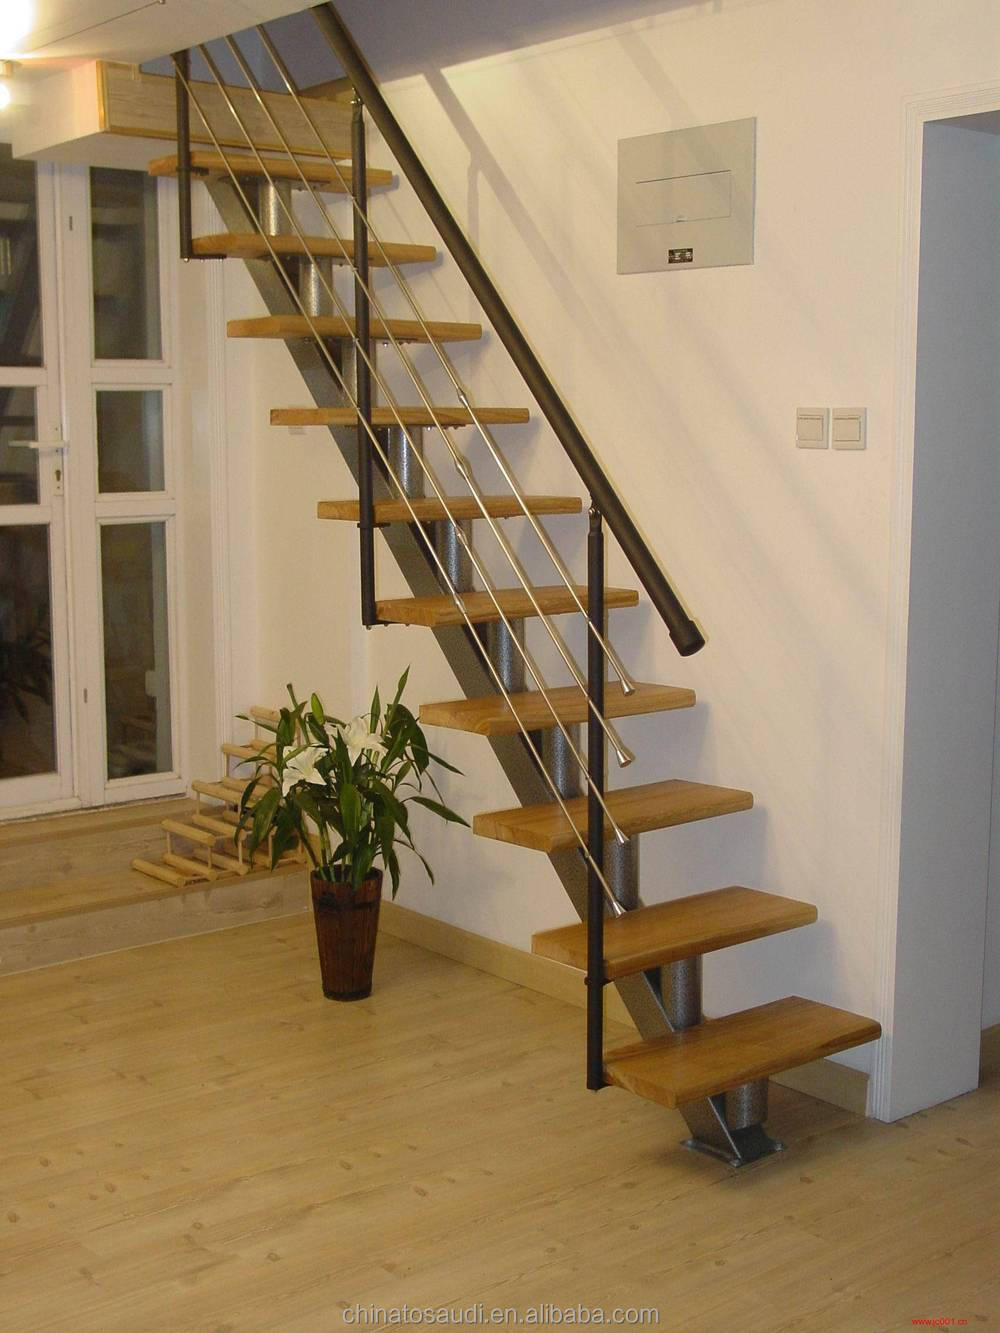 Spiral Stairs Prefabricated Spiral Stairs Metal Spiral